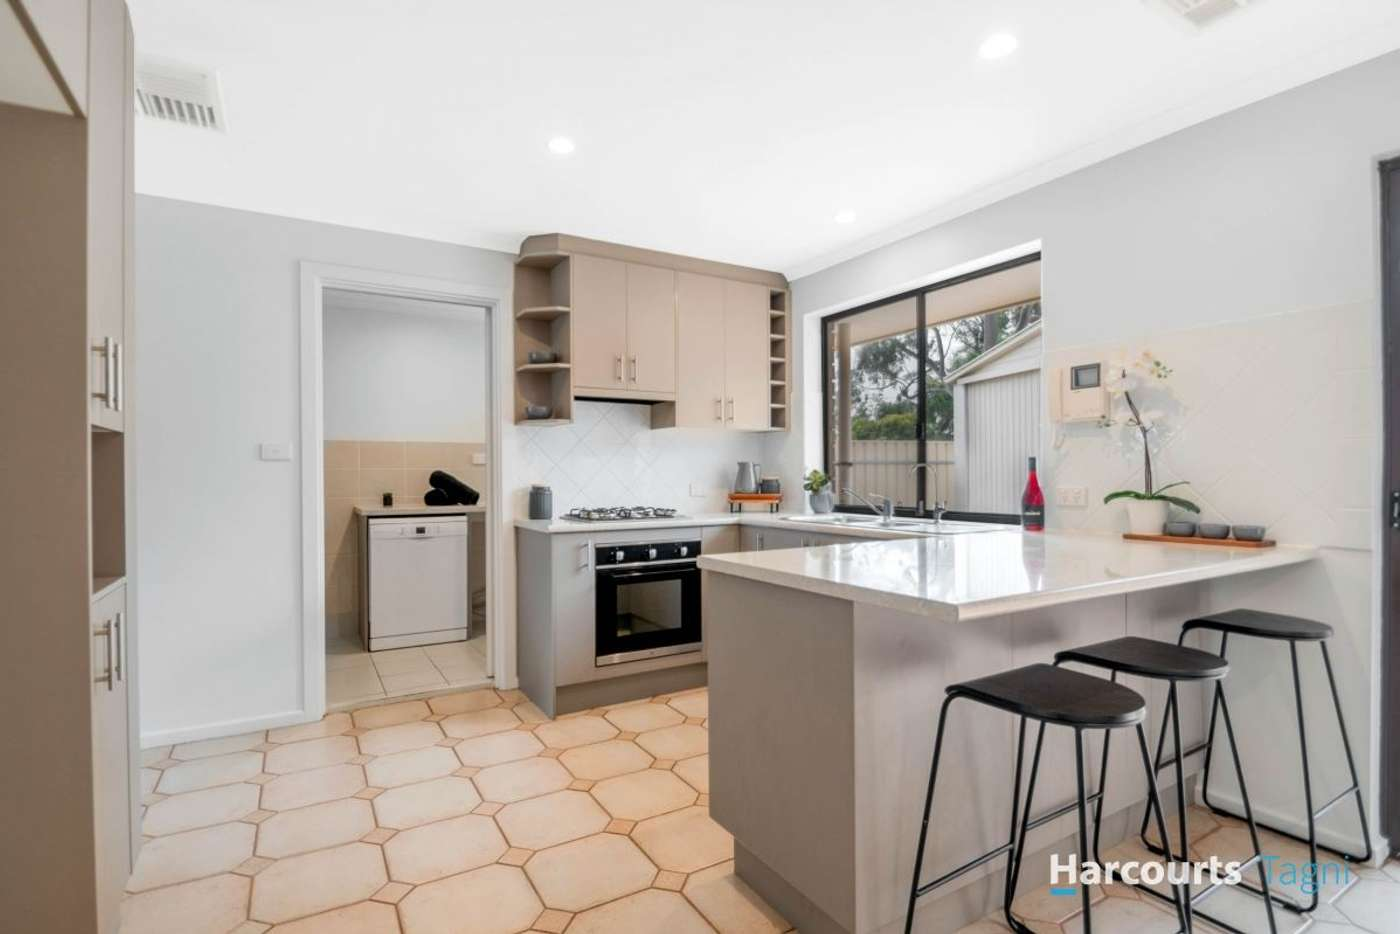 Fifth view of Homely house listing, 2A Redcraze Street, Aberfoyle Park SA 5159